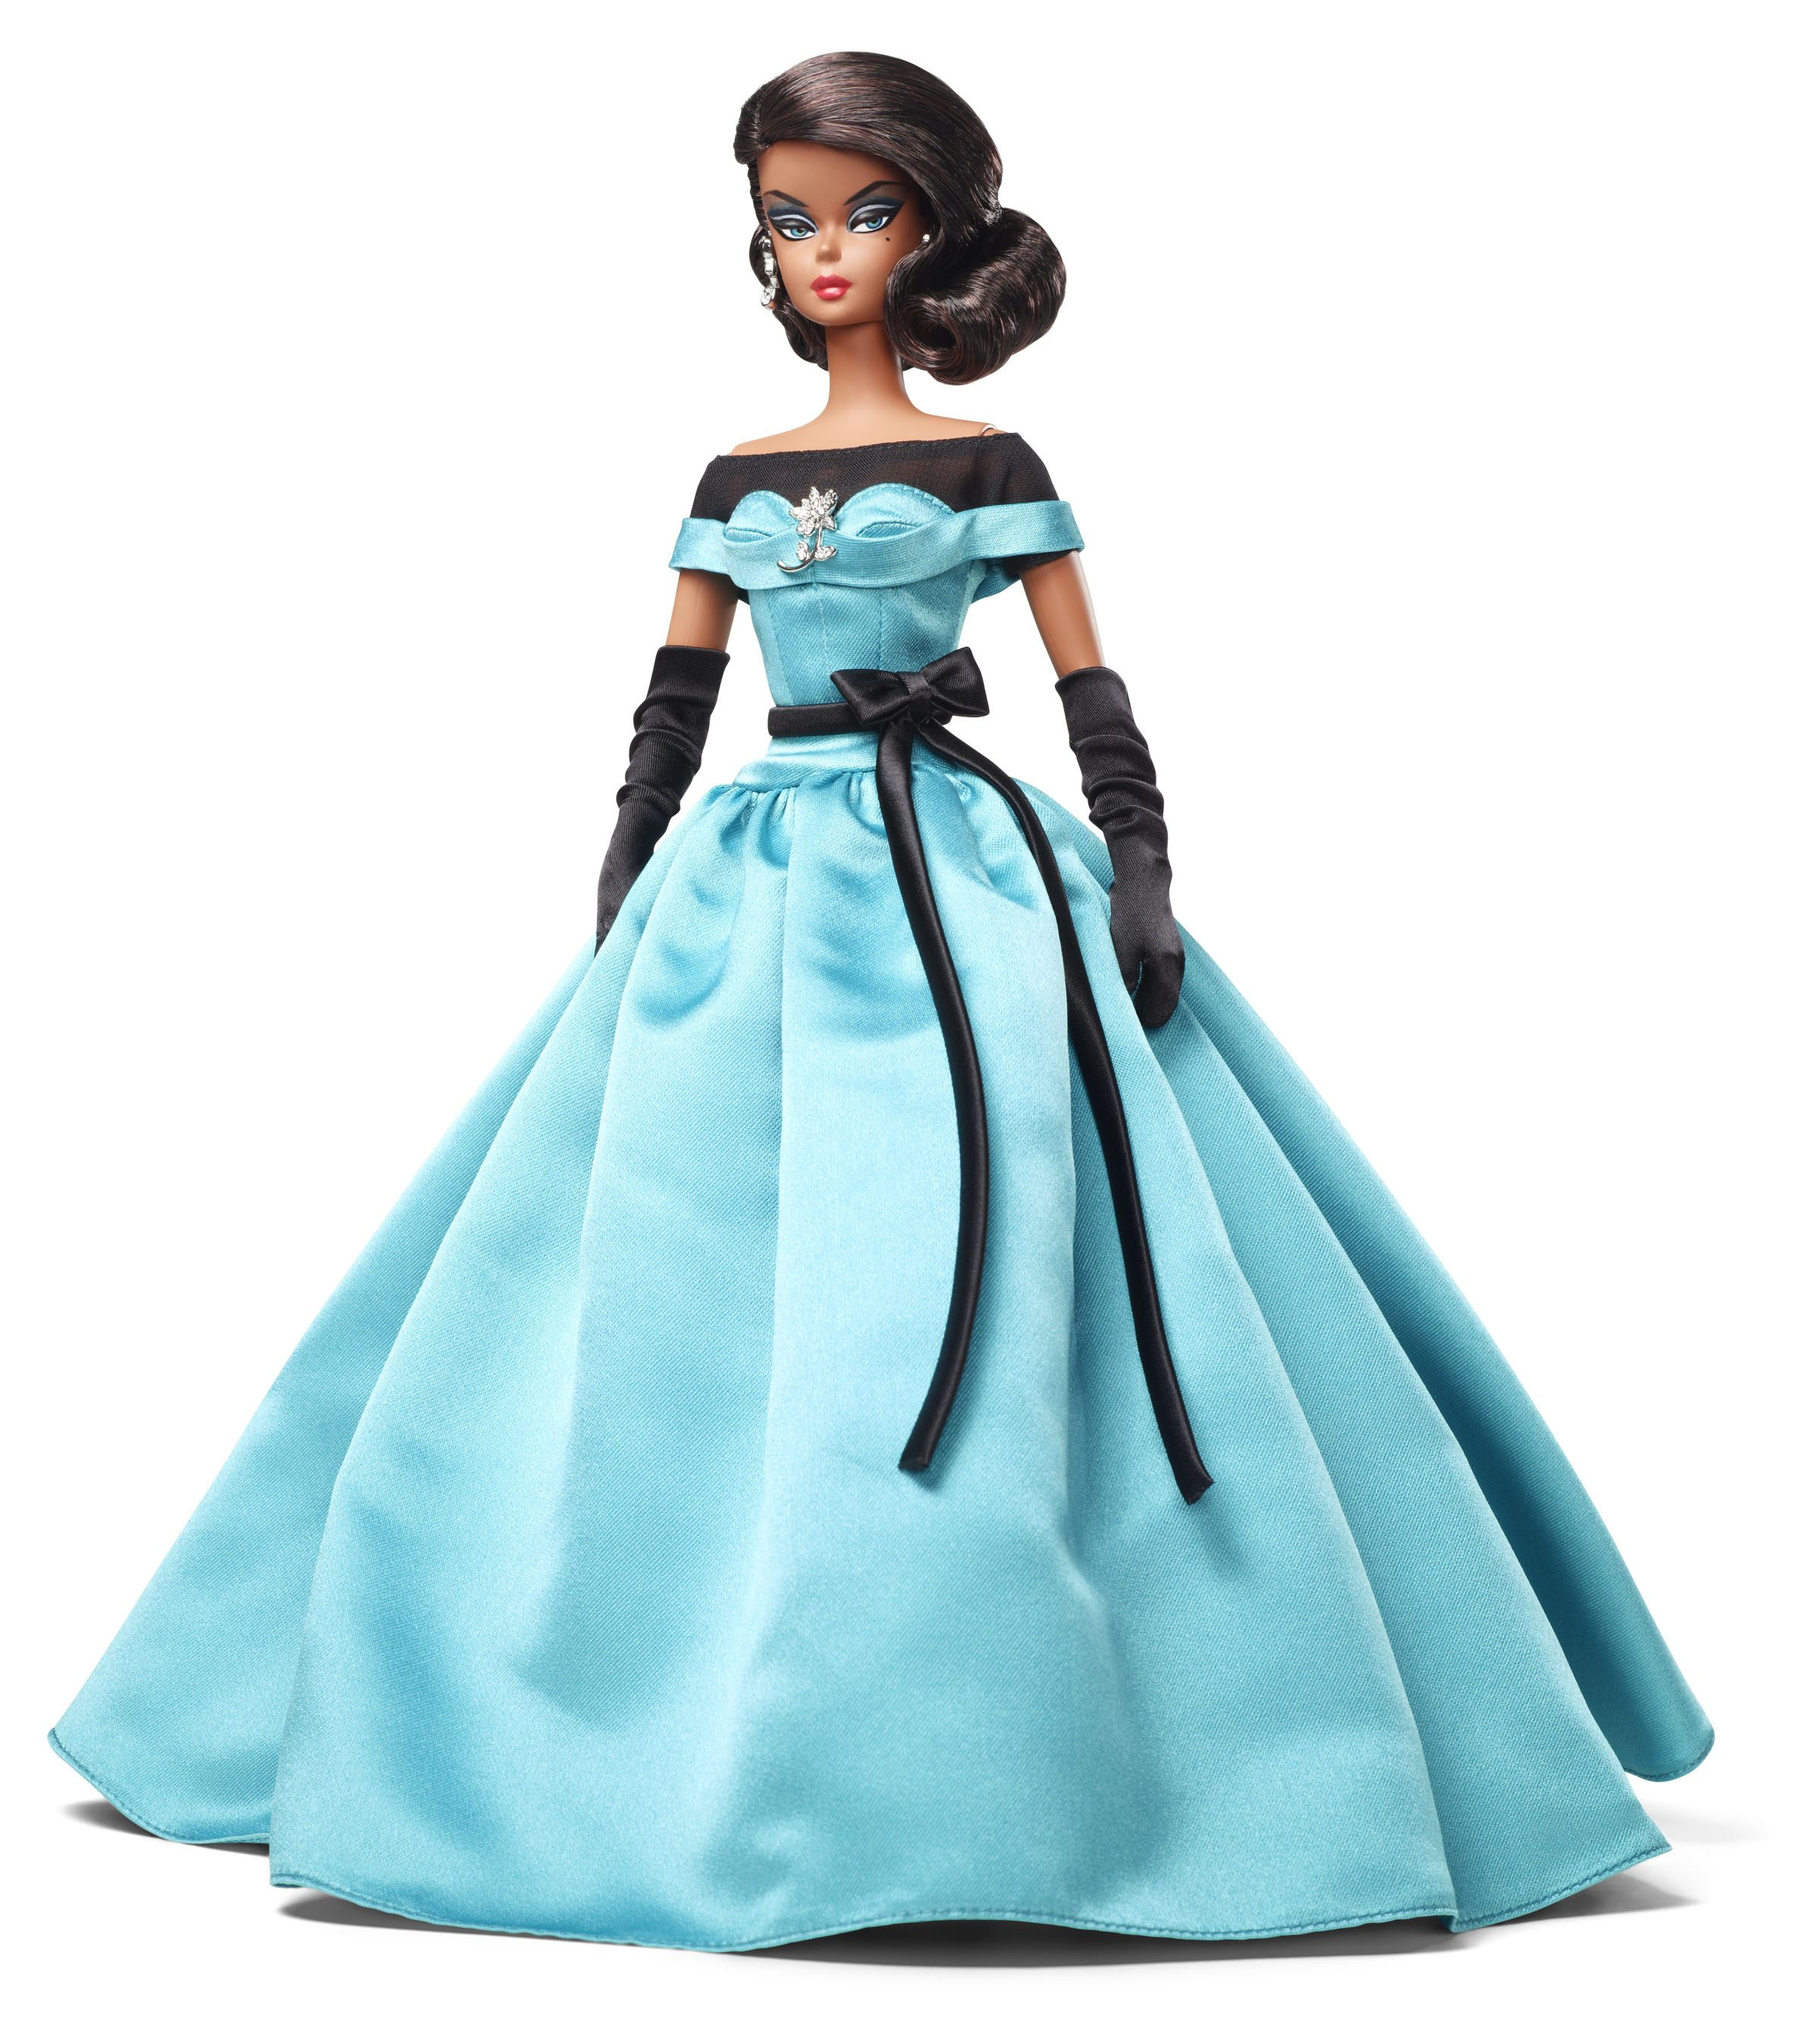 Ball Gown Barbie Doll (BFMC) - Susans Shop of Dolls